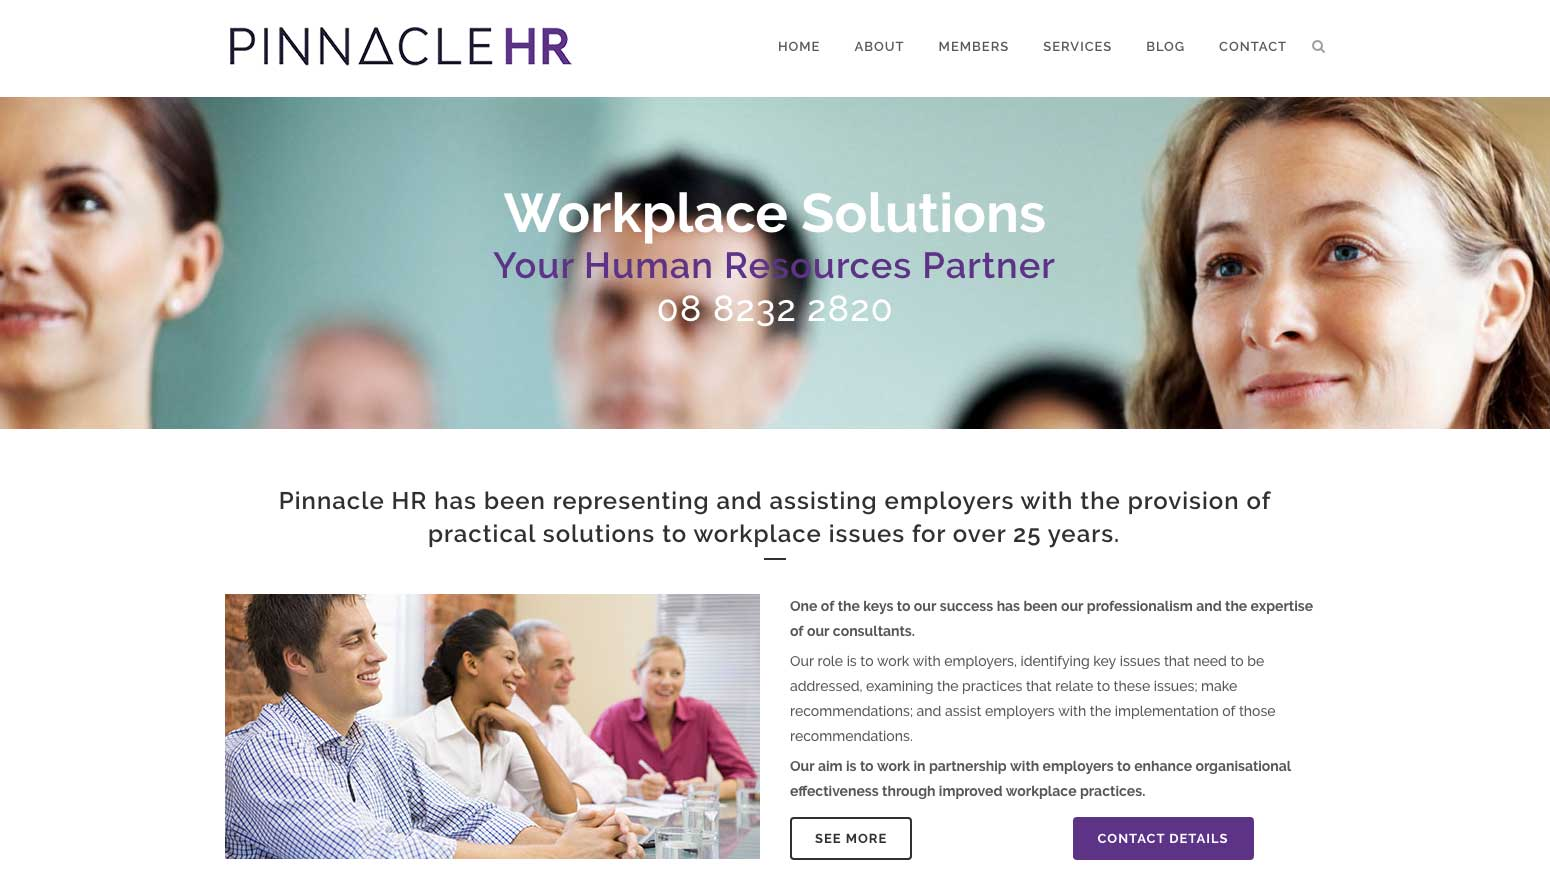 Pinnacle HR